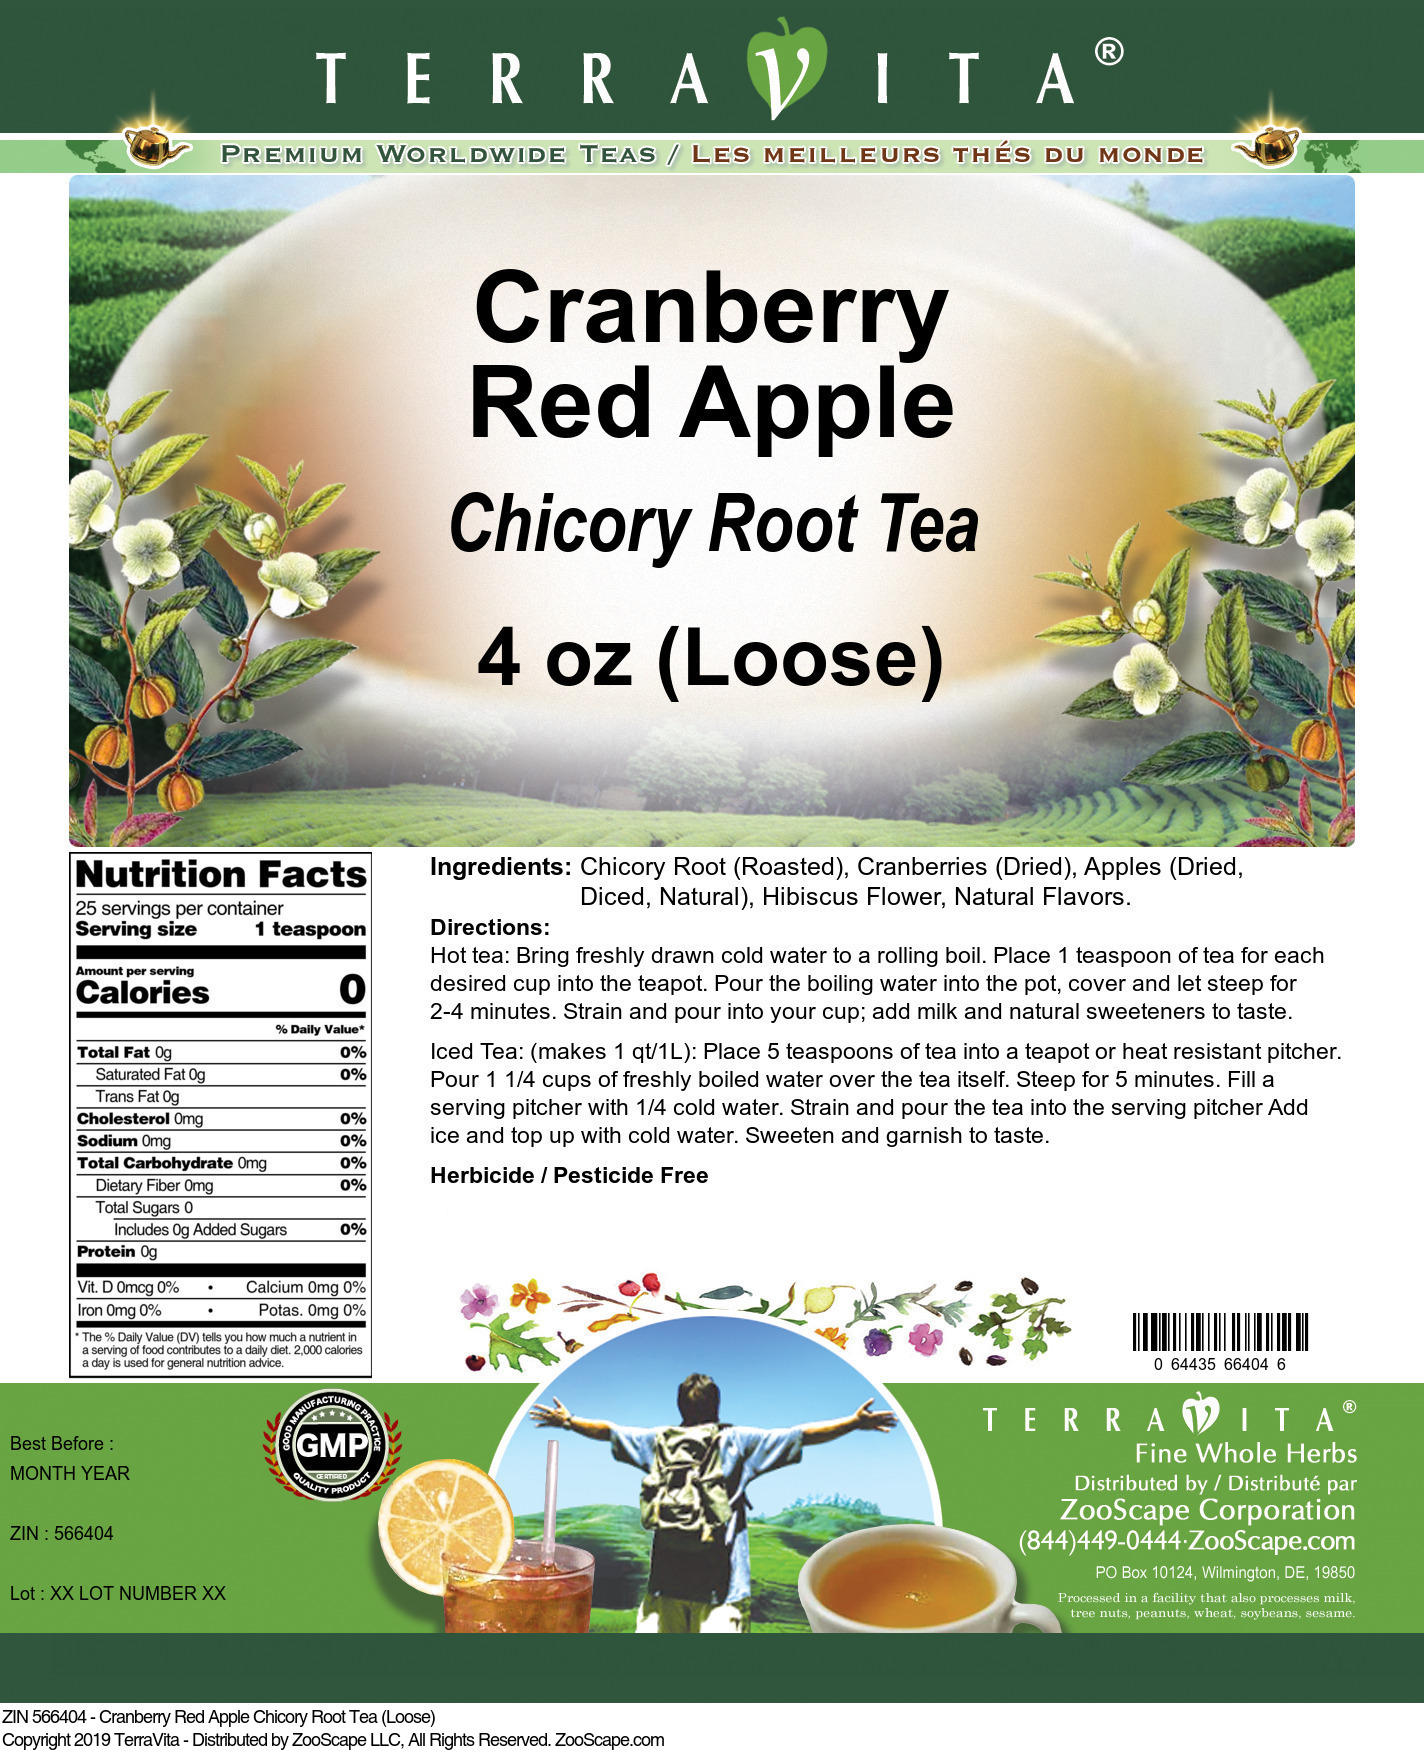 Cranberry Red Apple Chicory Root Tea (Loose)